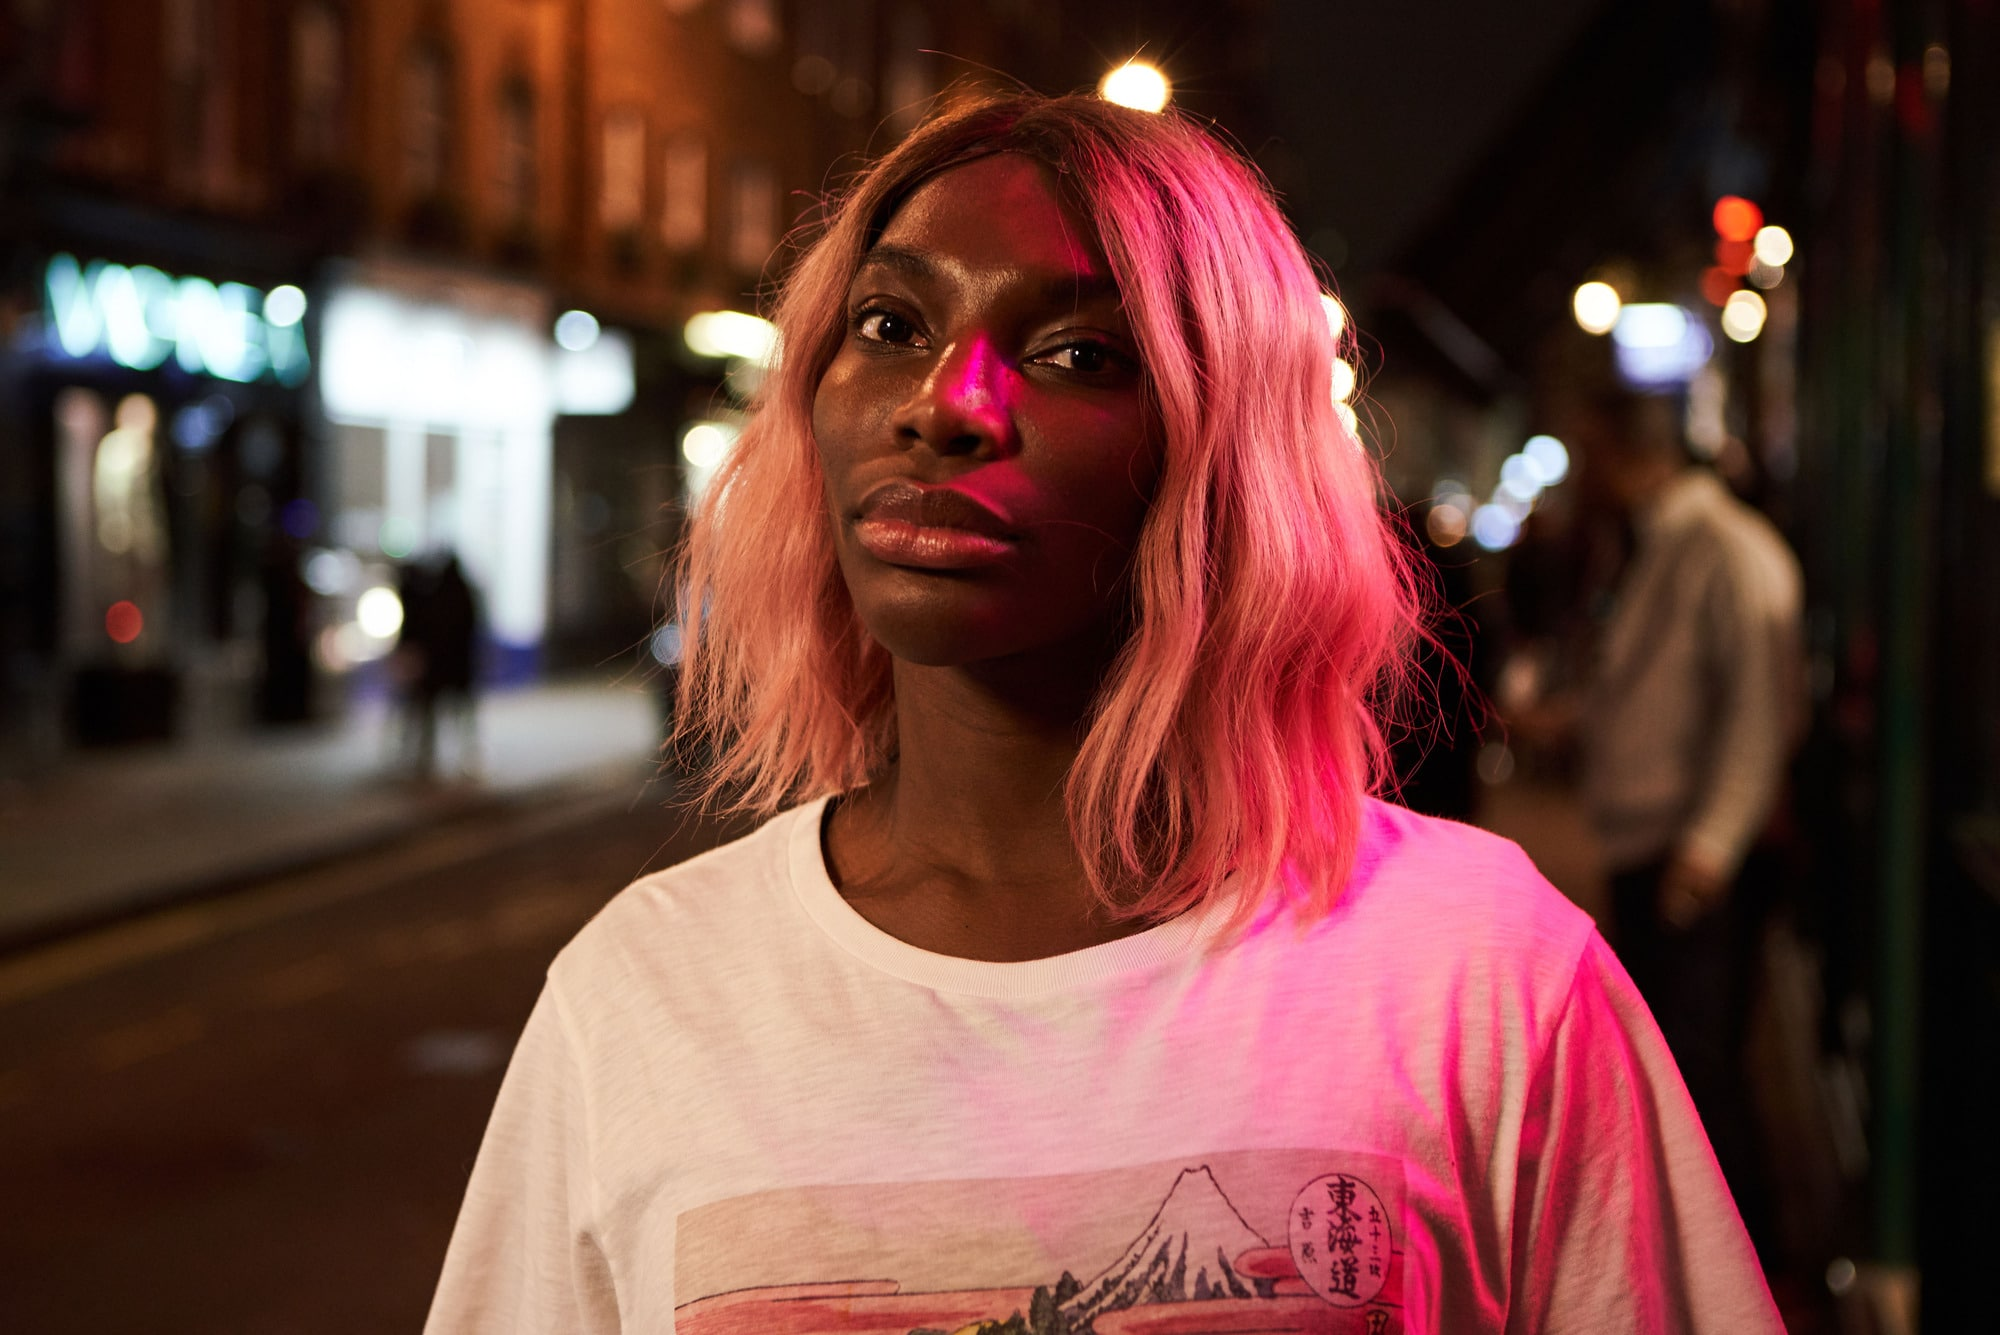 BBC's I May Destroy You - Premiere Date & Trailer 3